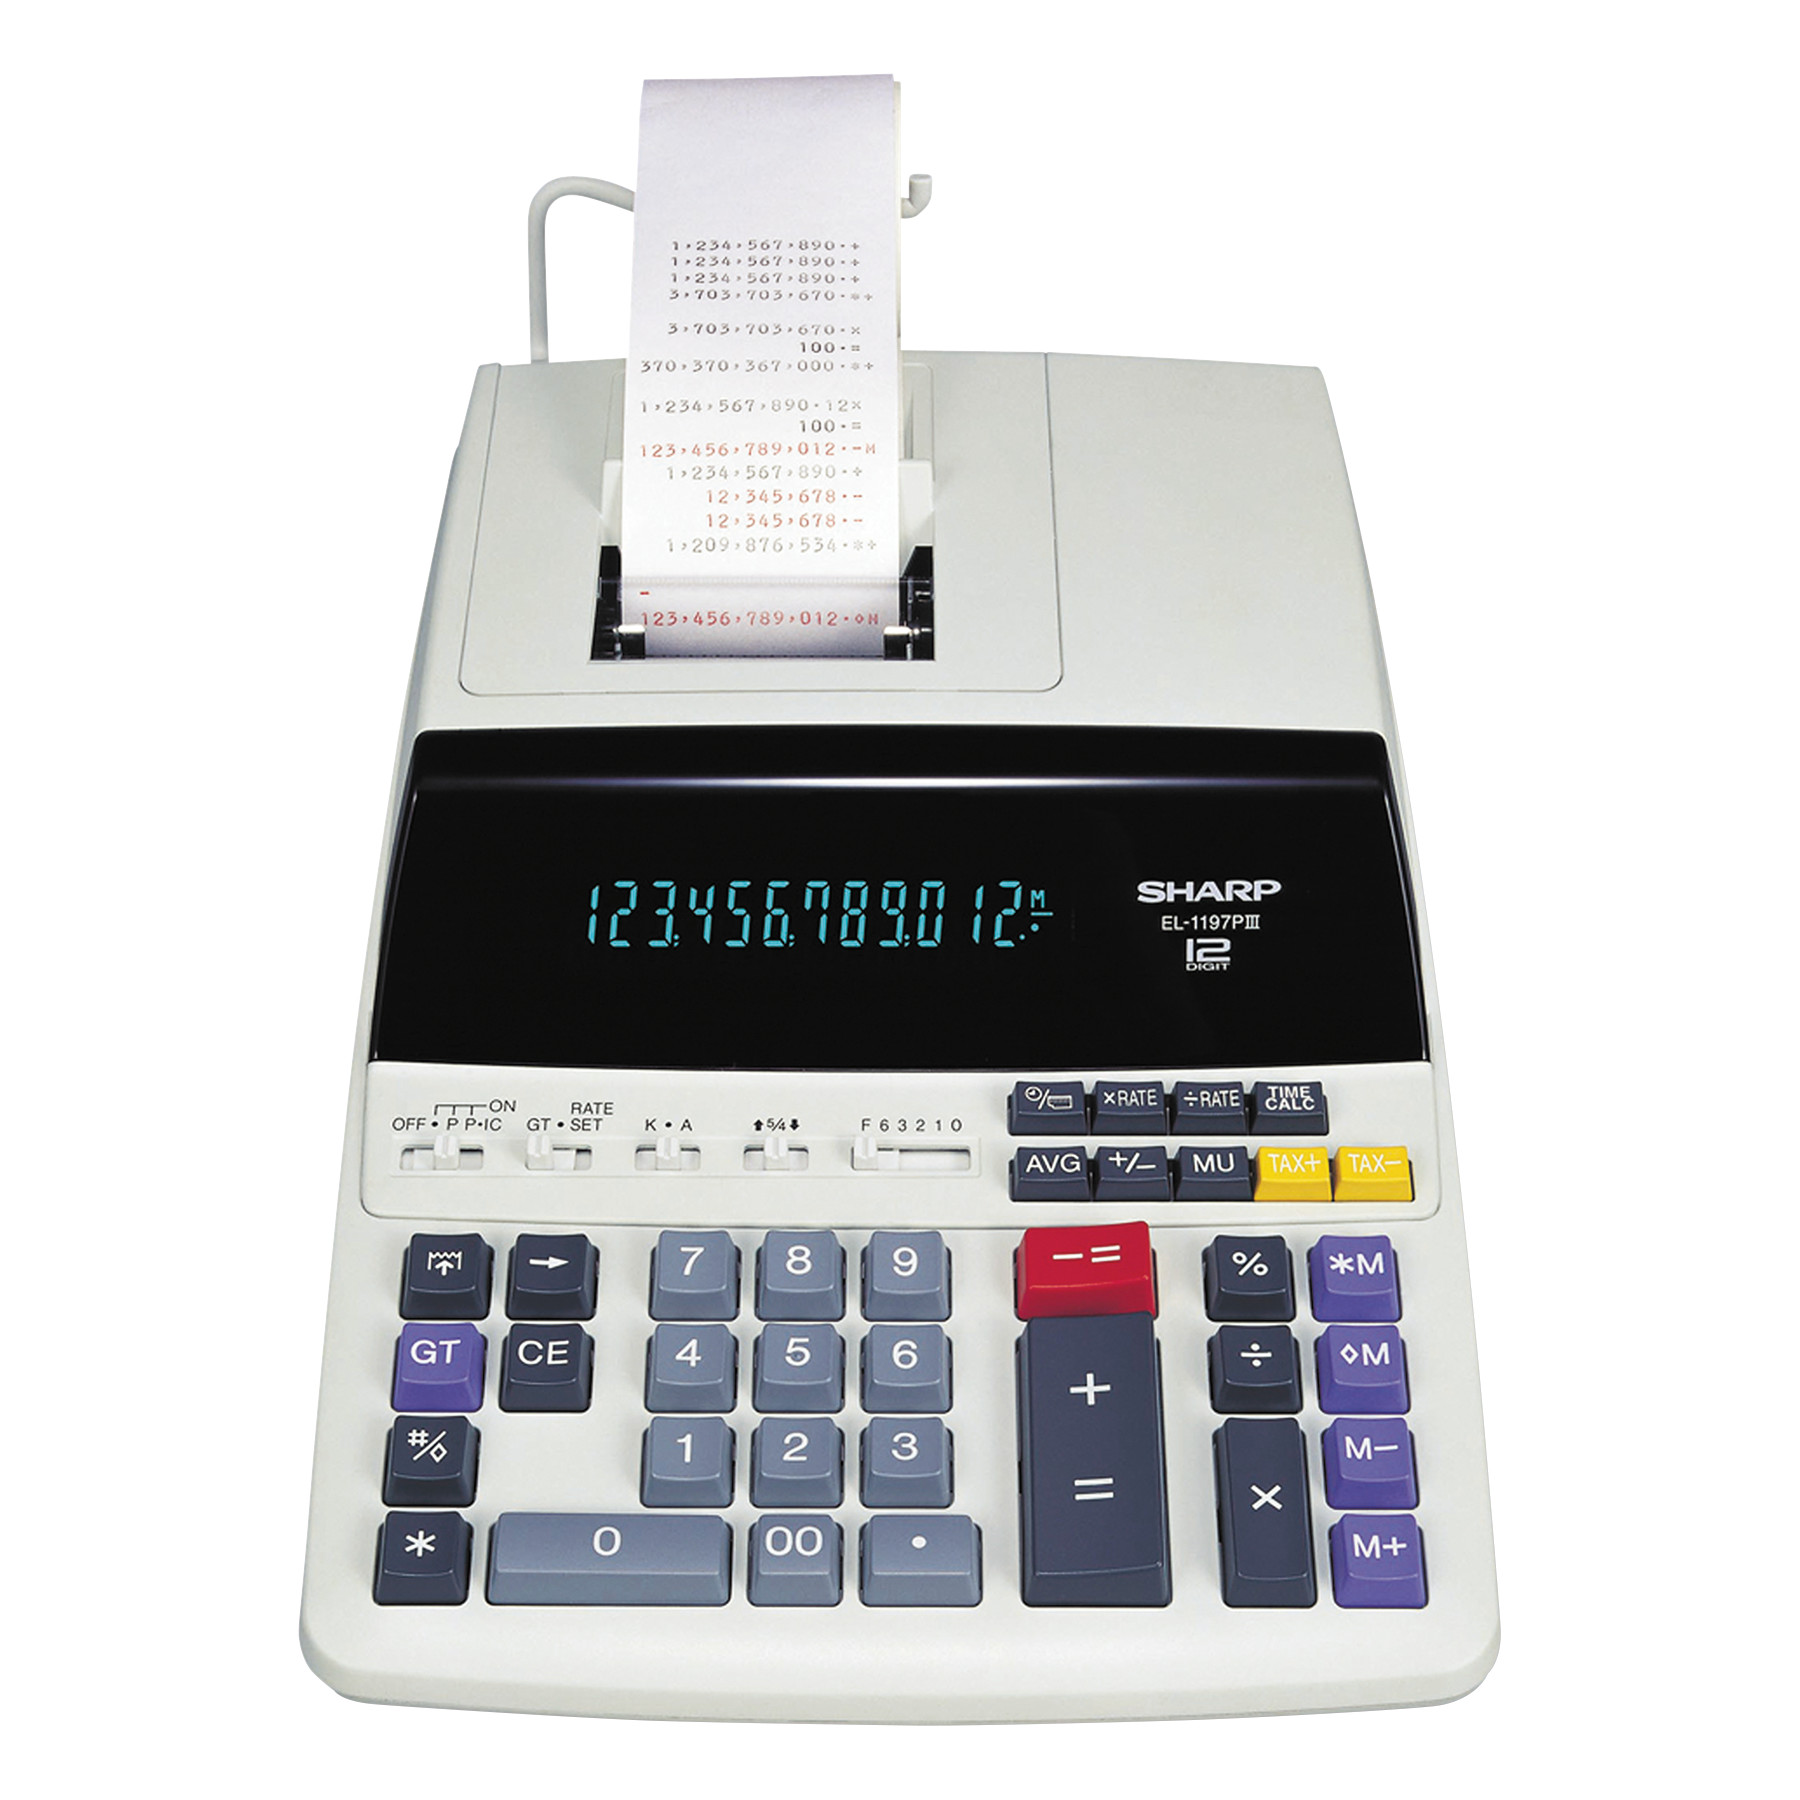 Sharp EL1197PIII Two-Color Printing Desktop Calculator, Black/Red Print, 4.5 Lines/Sec